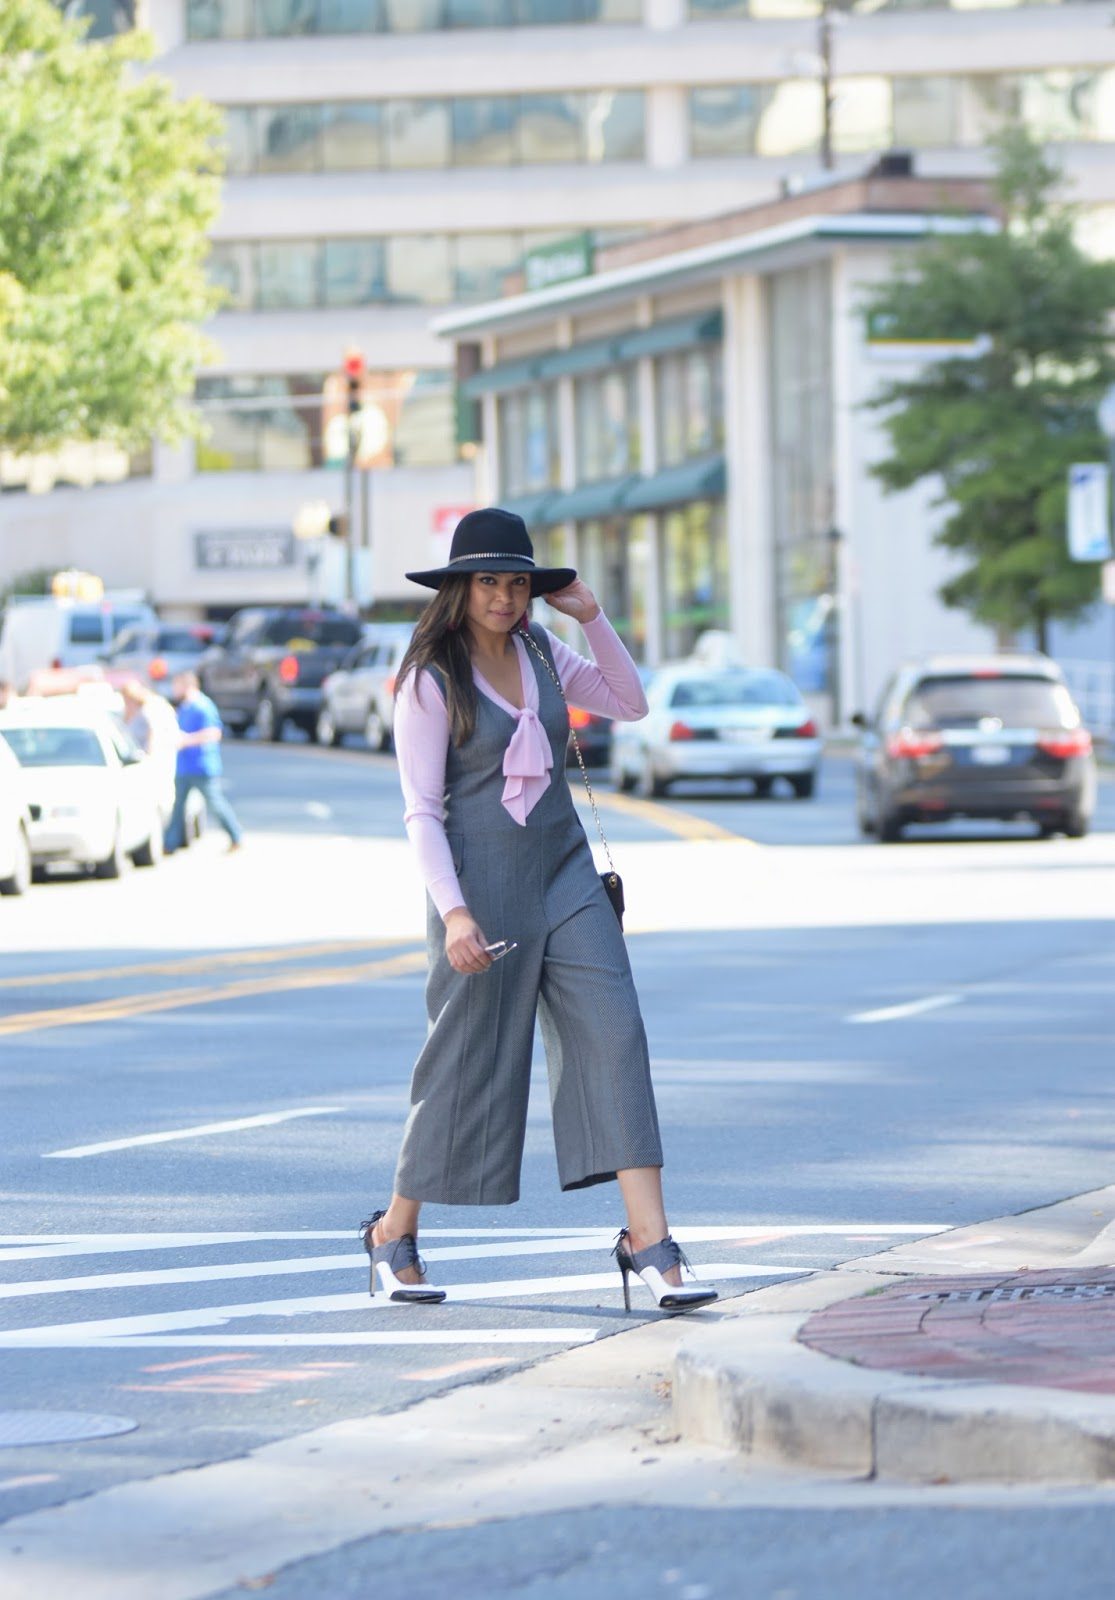 menswear inpired, fashion blogger, jumpsuit, anthropologie jumpsuit, hat style, loafers, streetstyle blogger, gray jumpsuit, pink bow sweater, fashion, ootd, personal style, myriad musings